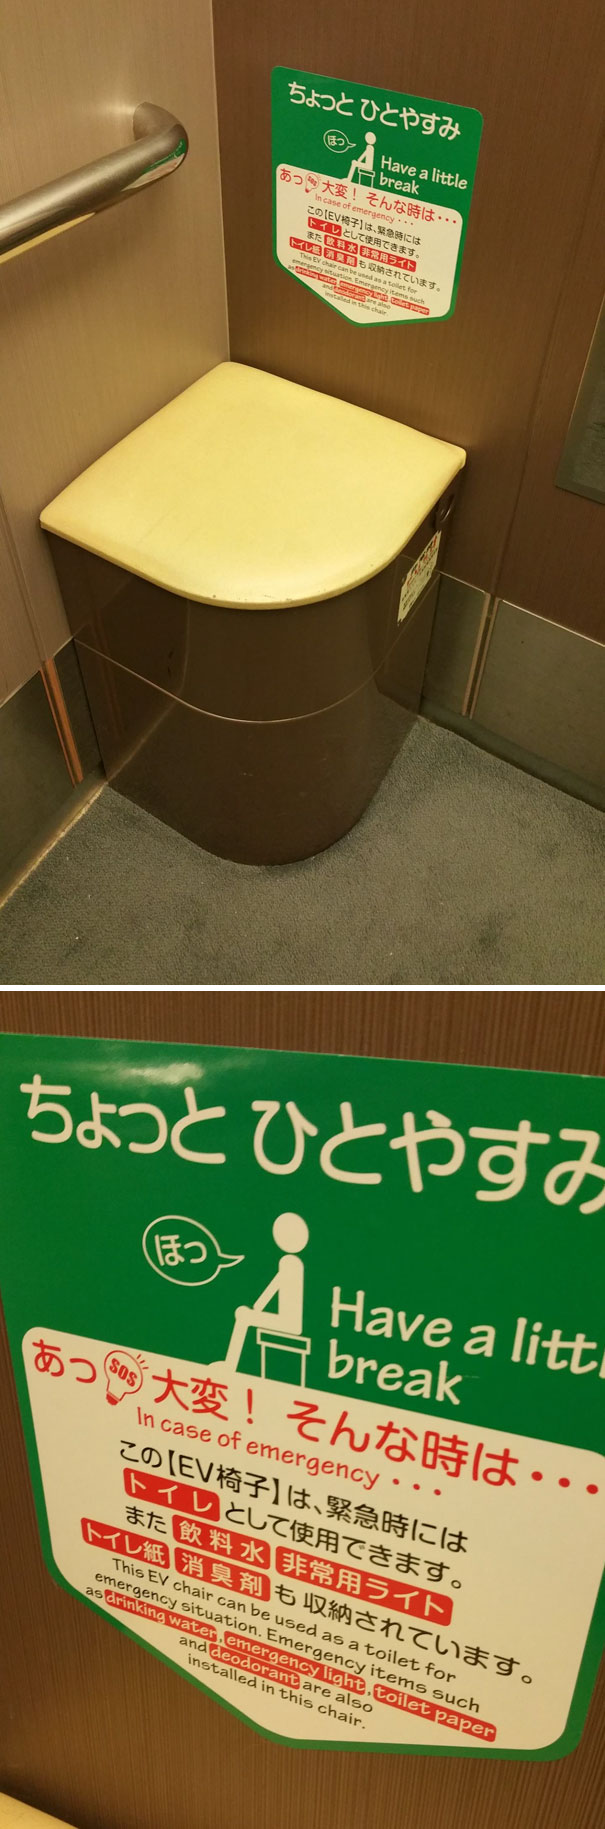 The seat that serves the purpose of a toilet in an emergency